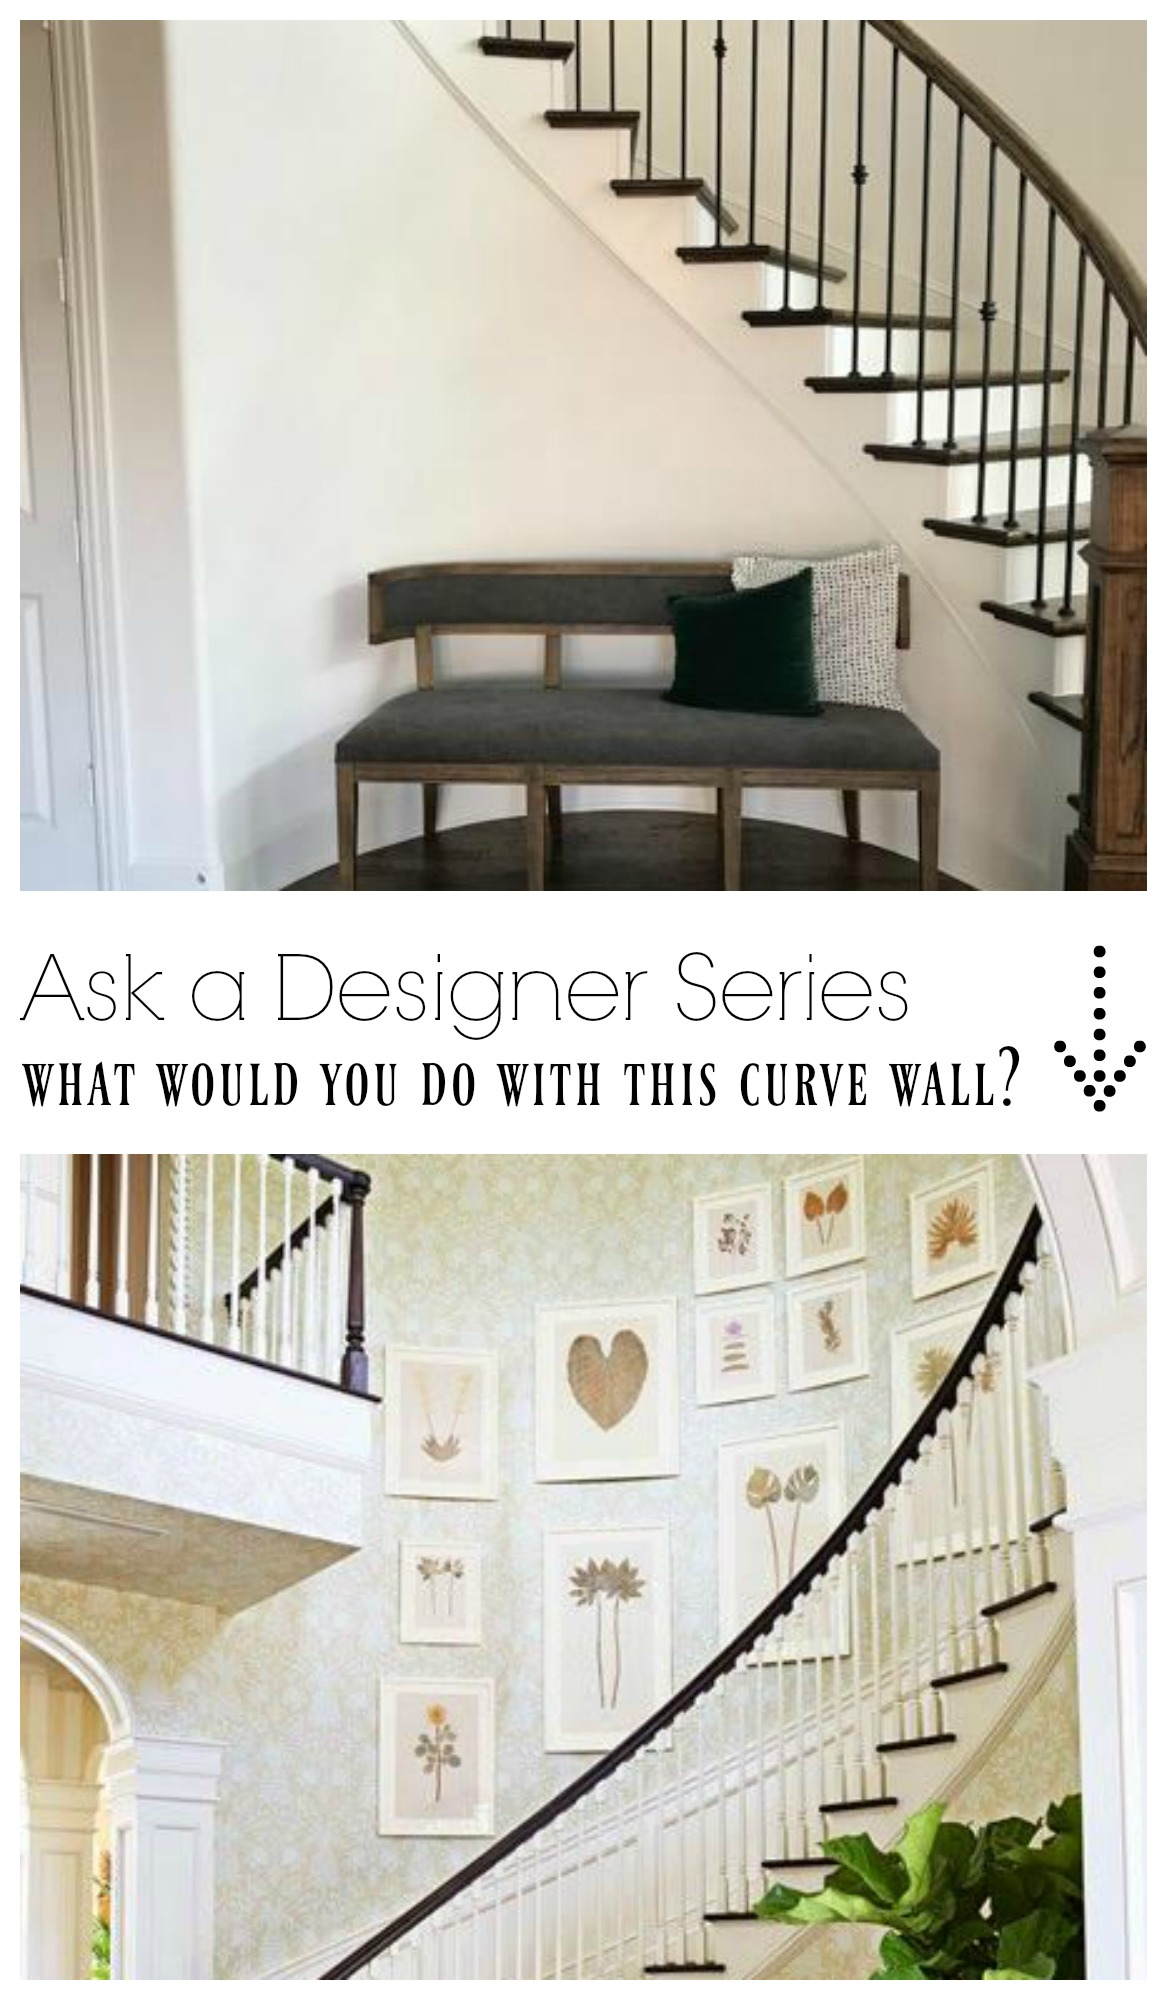 Ask a Designer Series- What do you do with this Curve Wall?